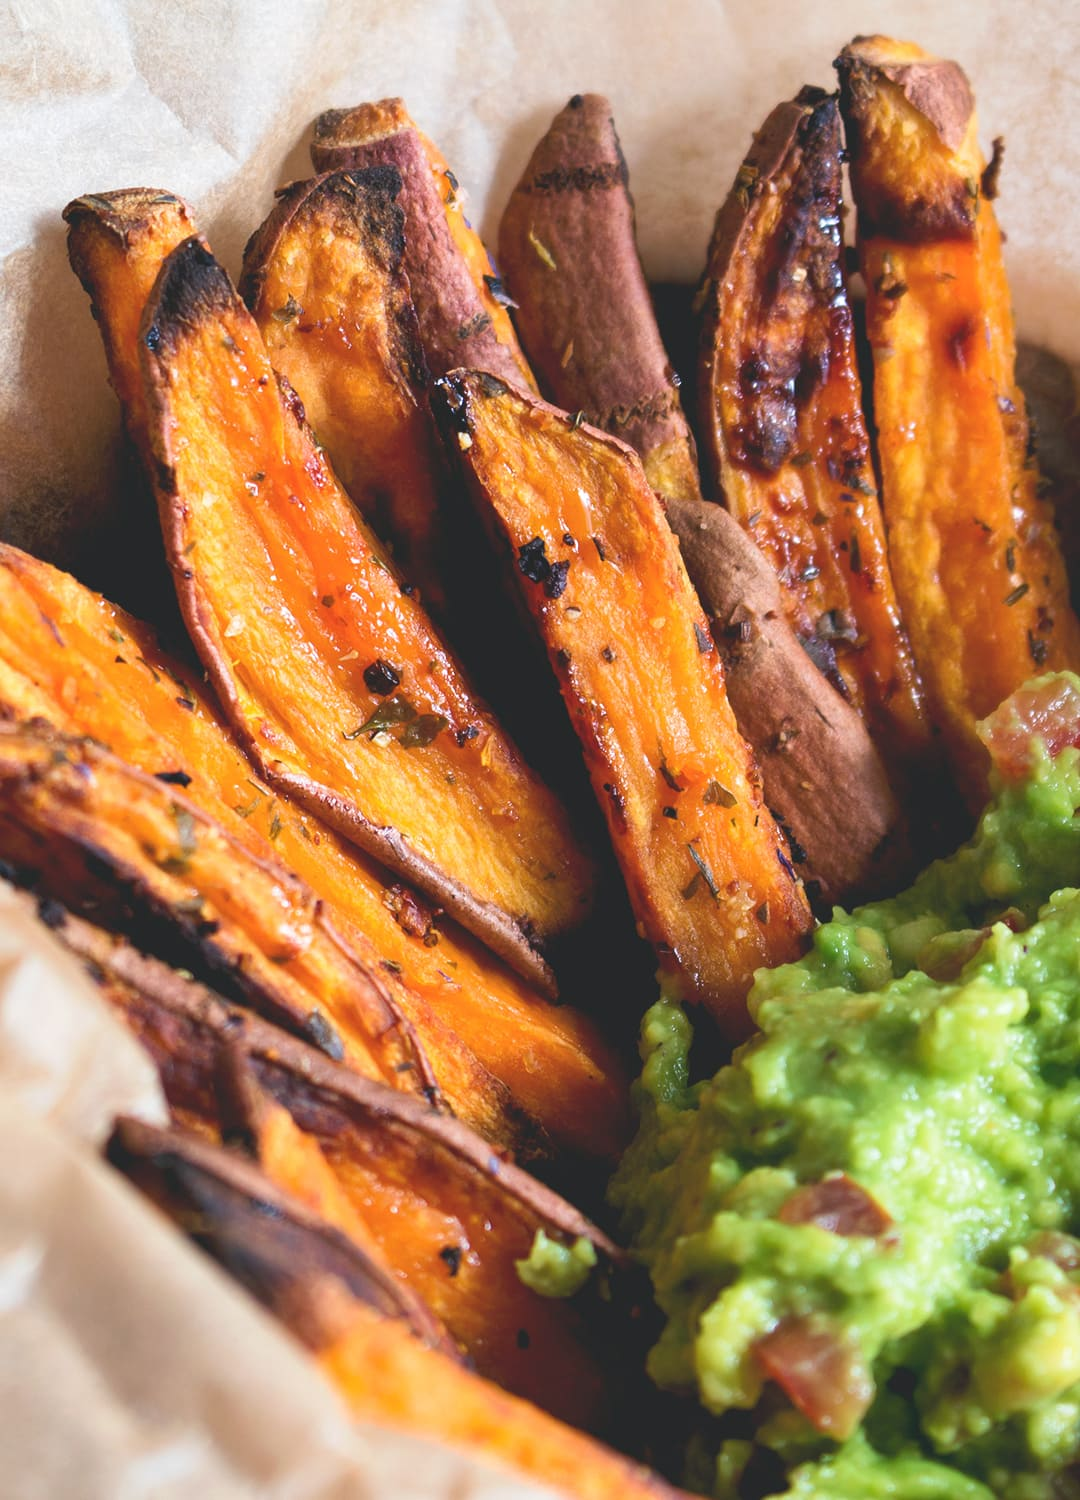 Sweet Potato Fries with Guacamole - delicious side dish, snack or main course! I love this recipe. Sweet potato fries are so delicious and actually good for you!   thehealthfulideas.com